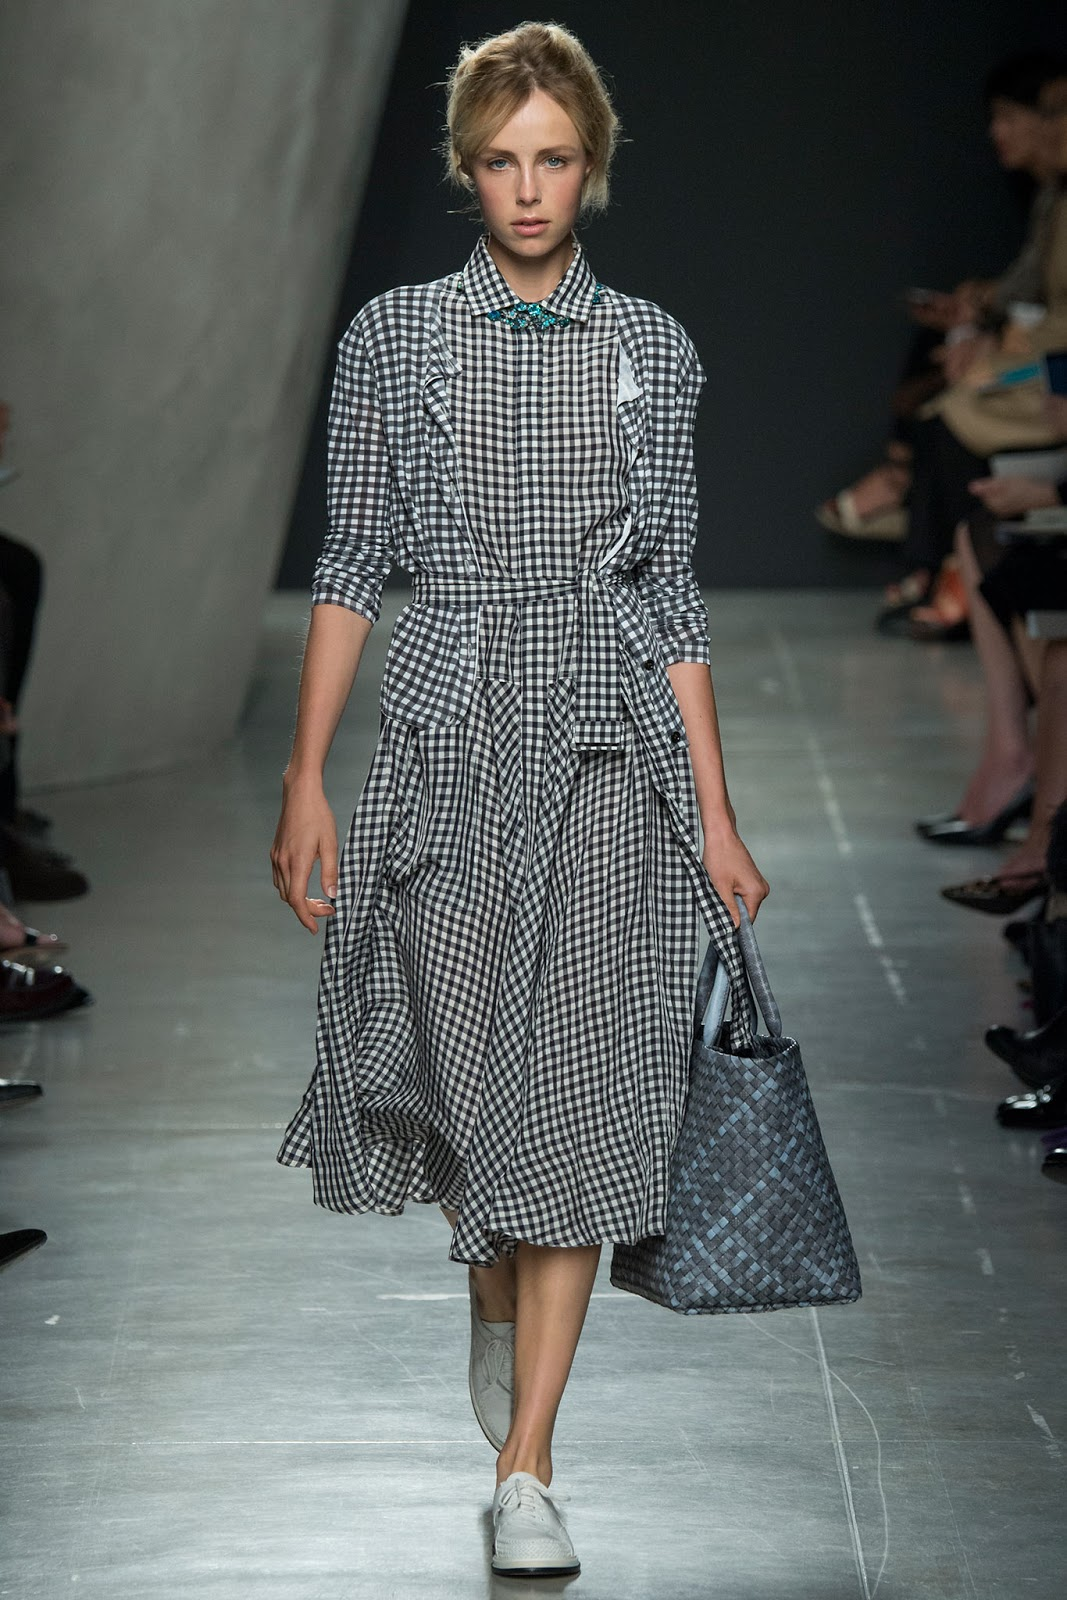 spring/summer 2015 trends / shirtdress / history of shirt dress / bottega veneta spring 2015 / via fashioned by love british fashion blog